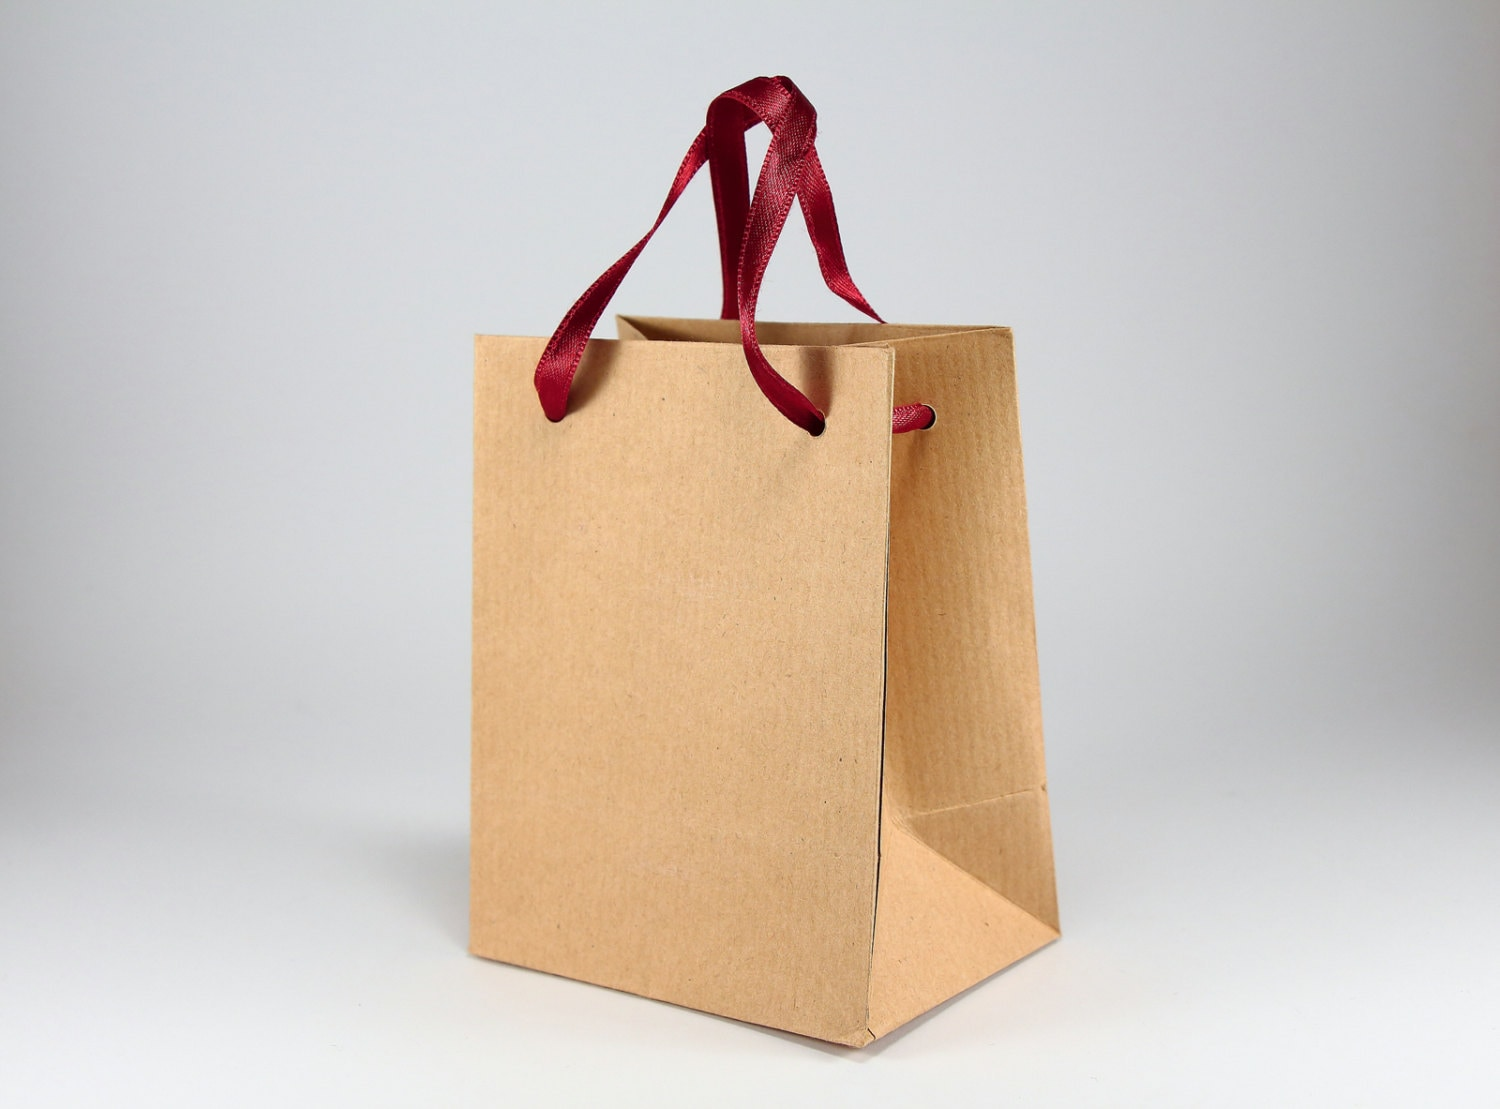 Wedding Gift Bags With Handles : 100 Kraft Brown Paper Bags w/ Handles Extra by stoykaspaperie